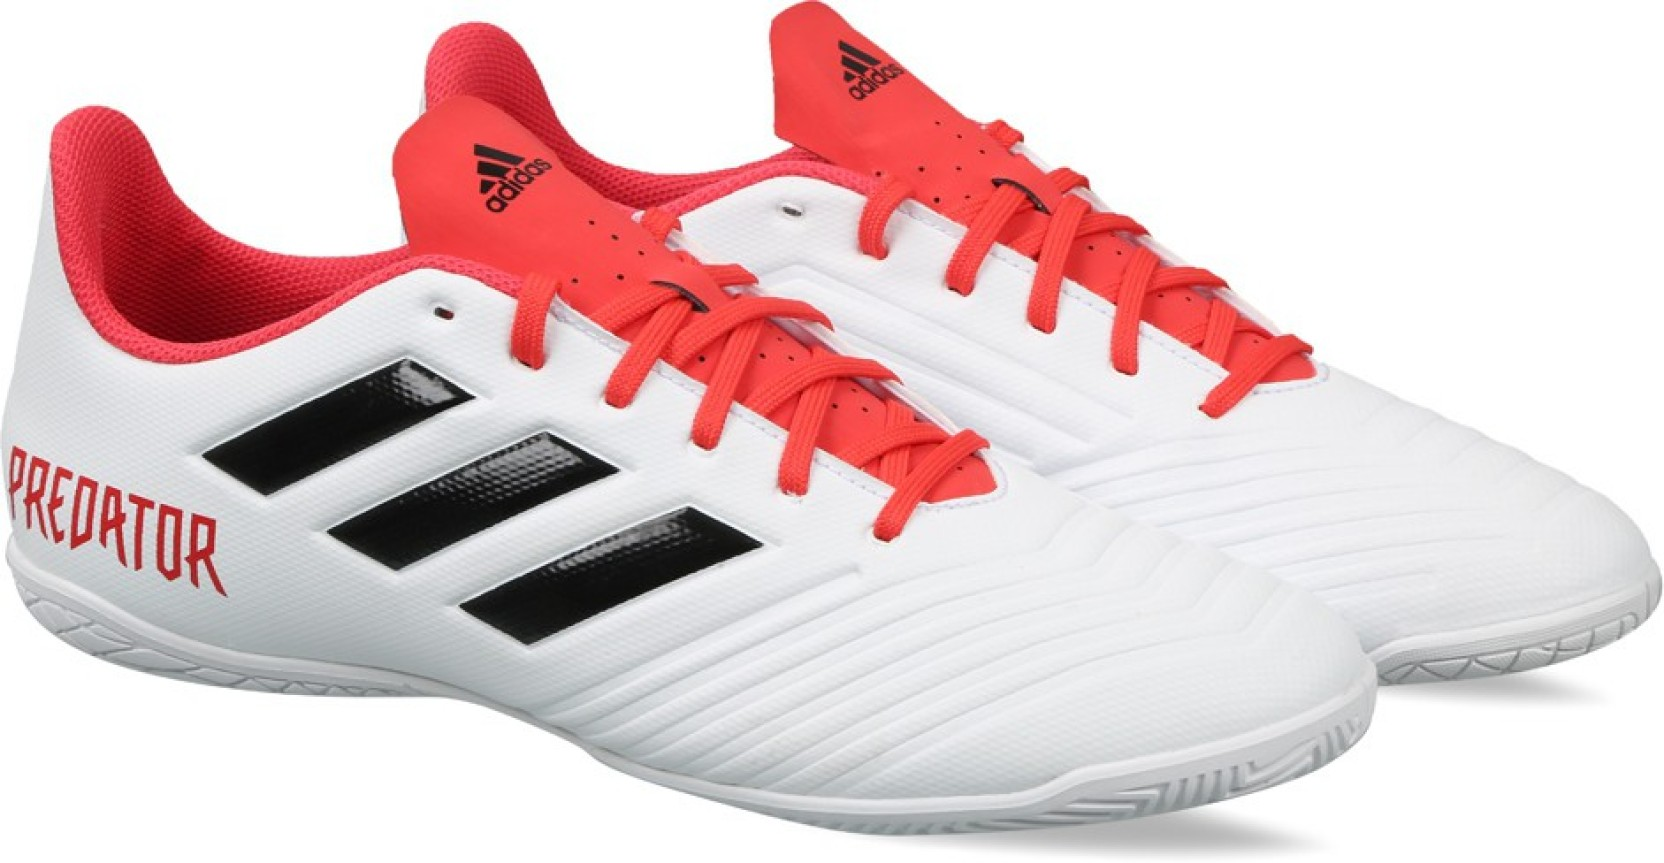 17566d20f4f ADIDAS PREDATOR TANGO 18.4 IN Football Shoes For Men - Buy CBLACK ...